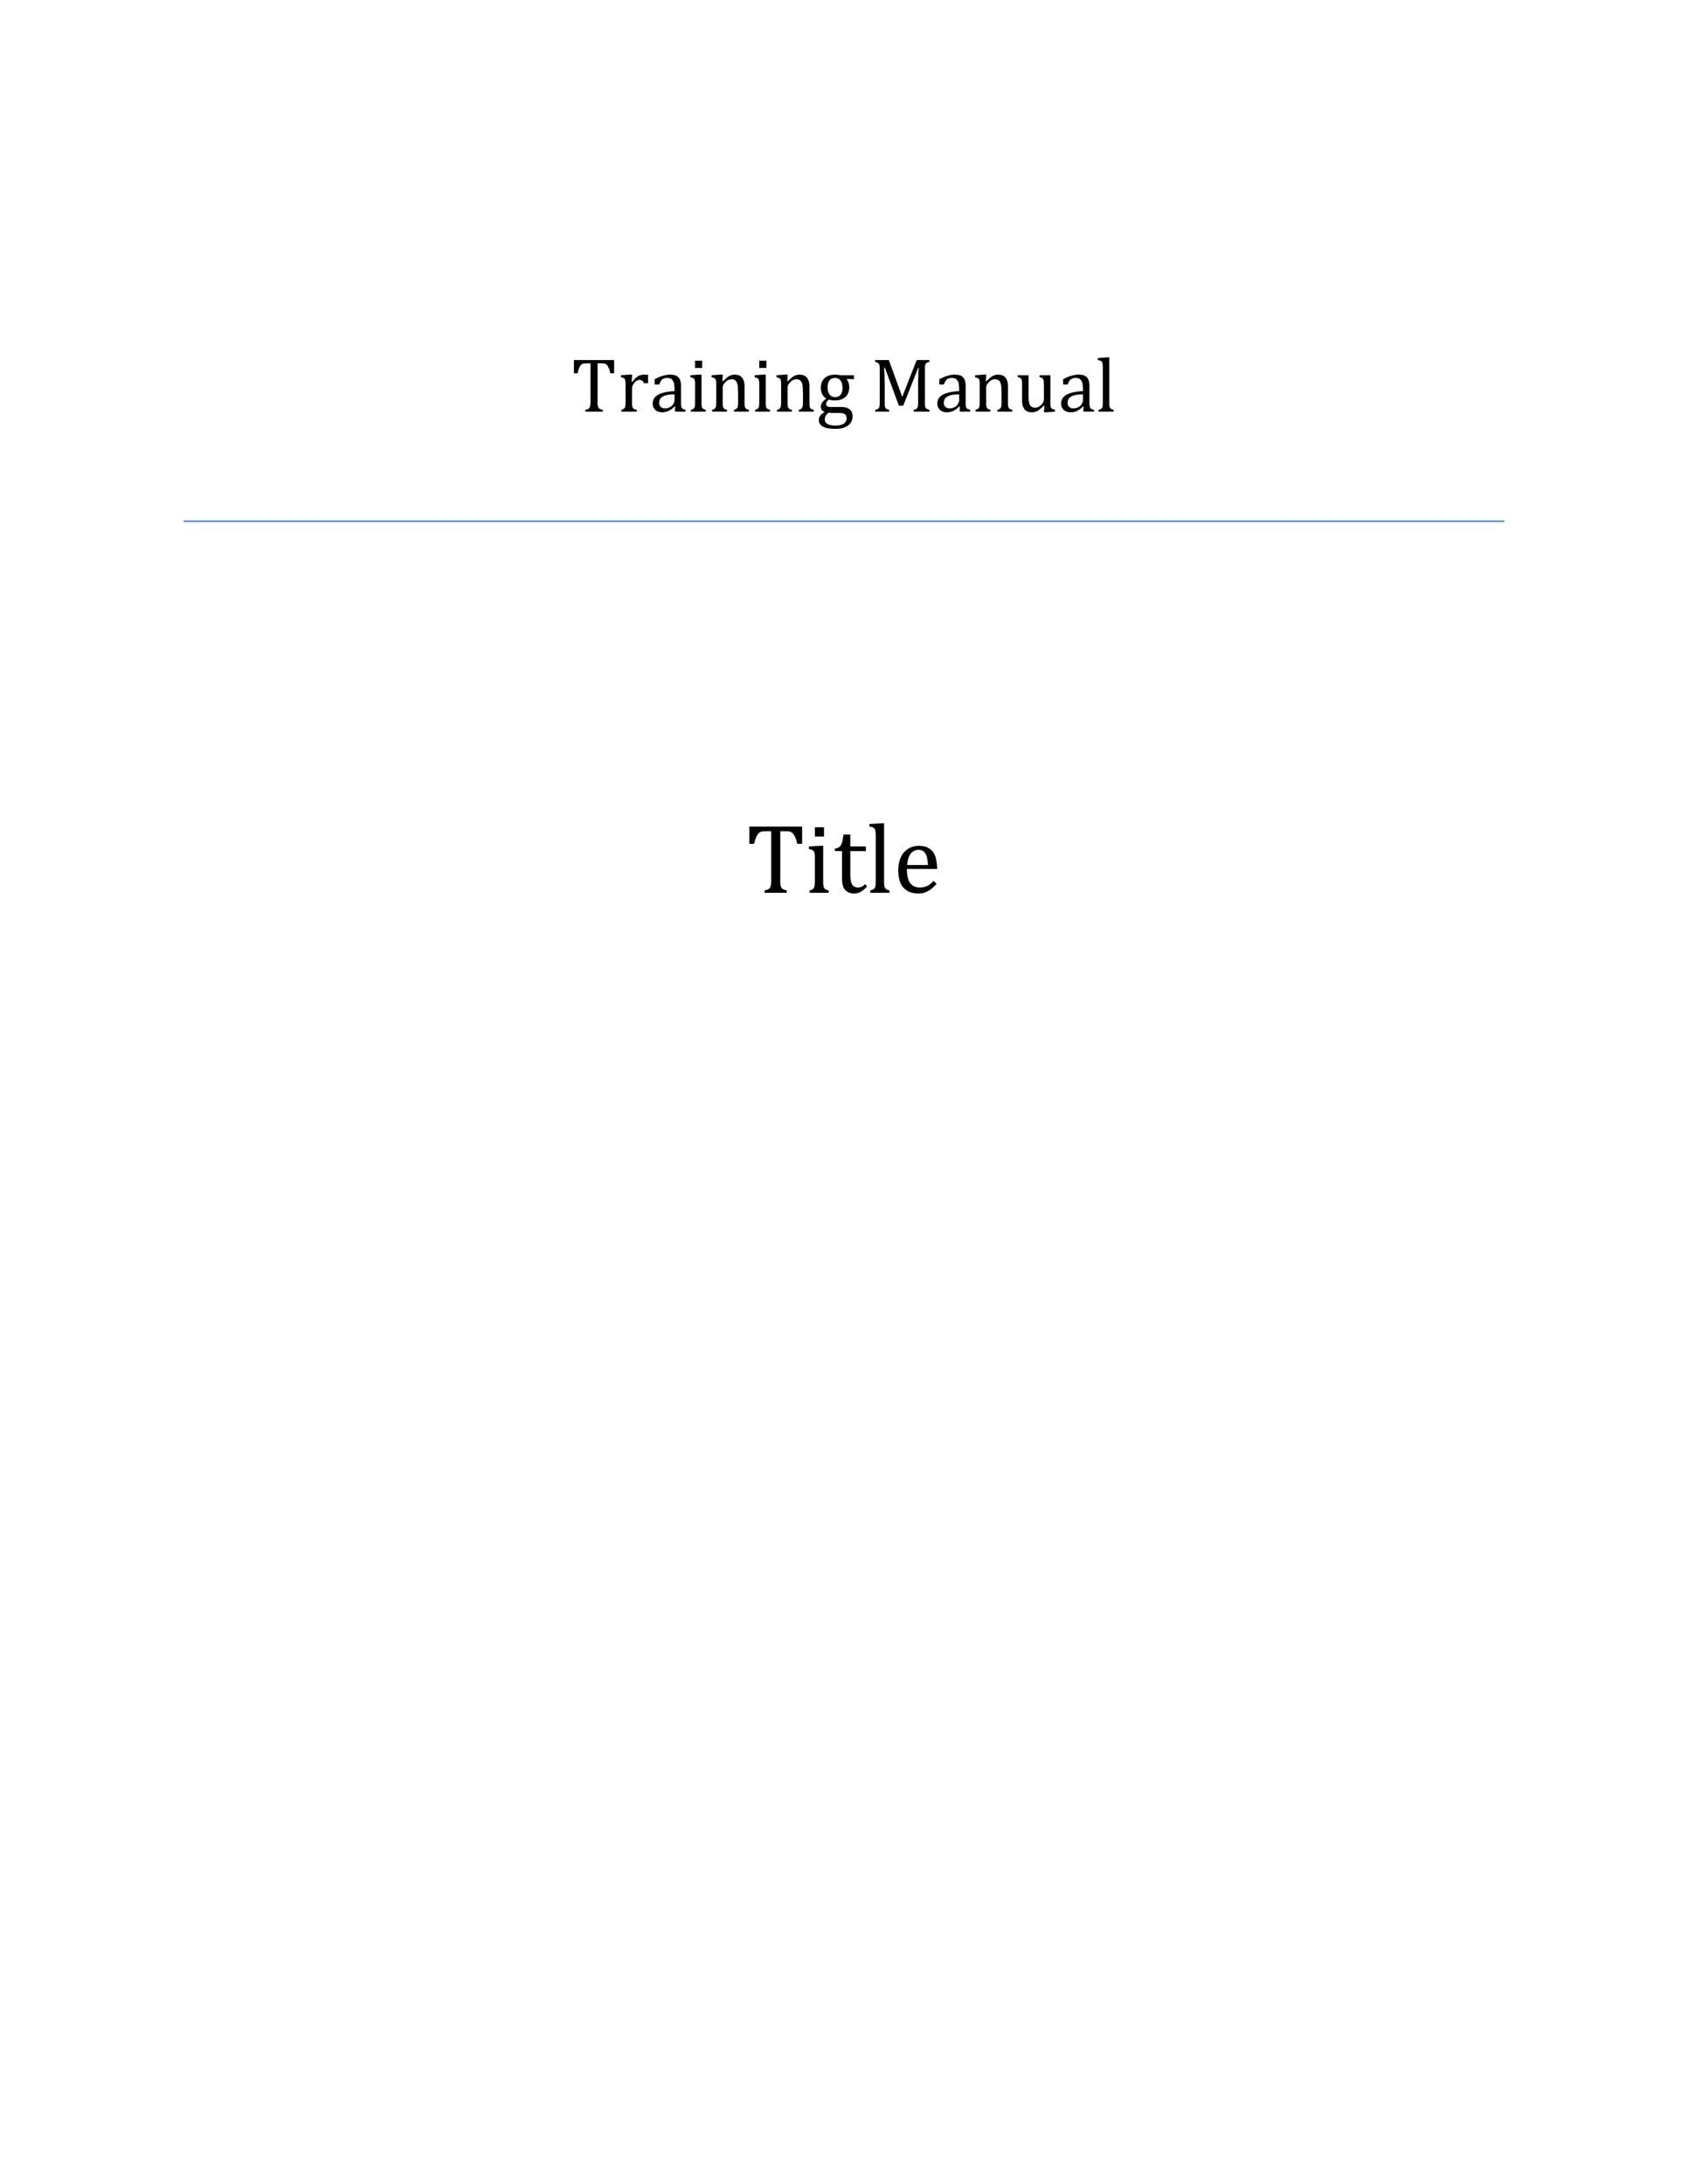 Free Training Manual Template 17  Free Training Manual Templates